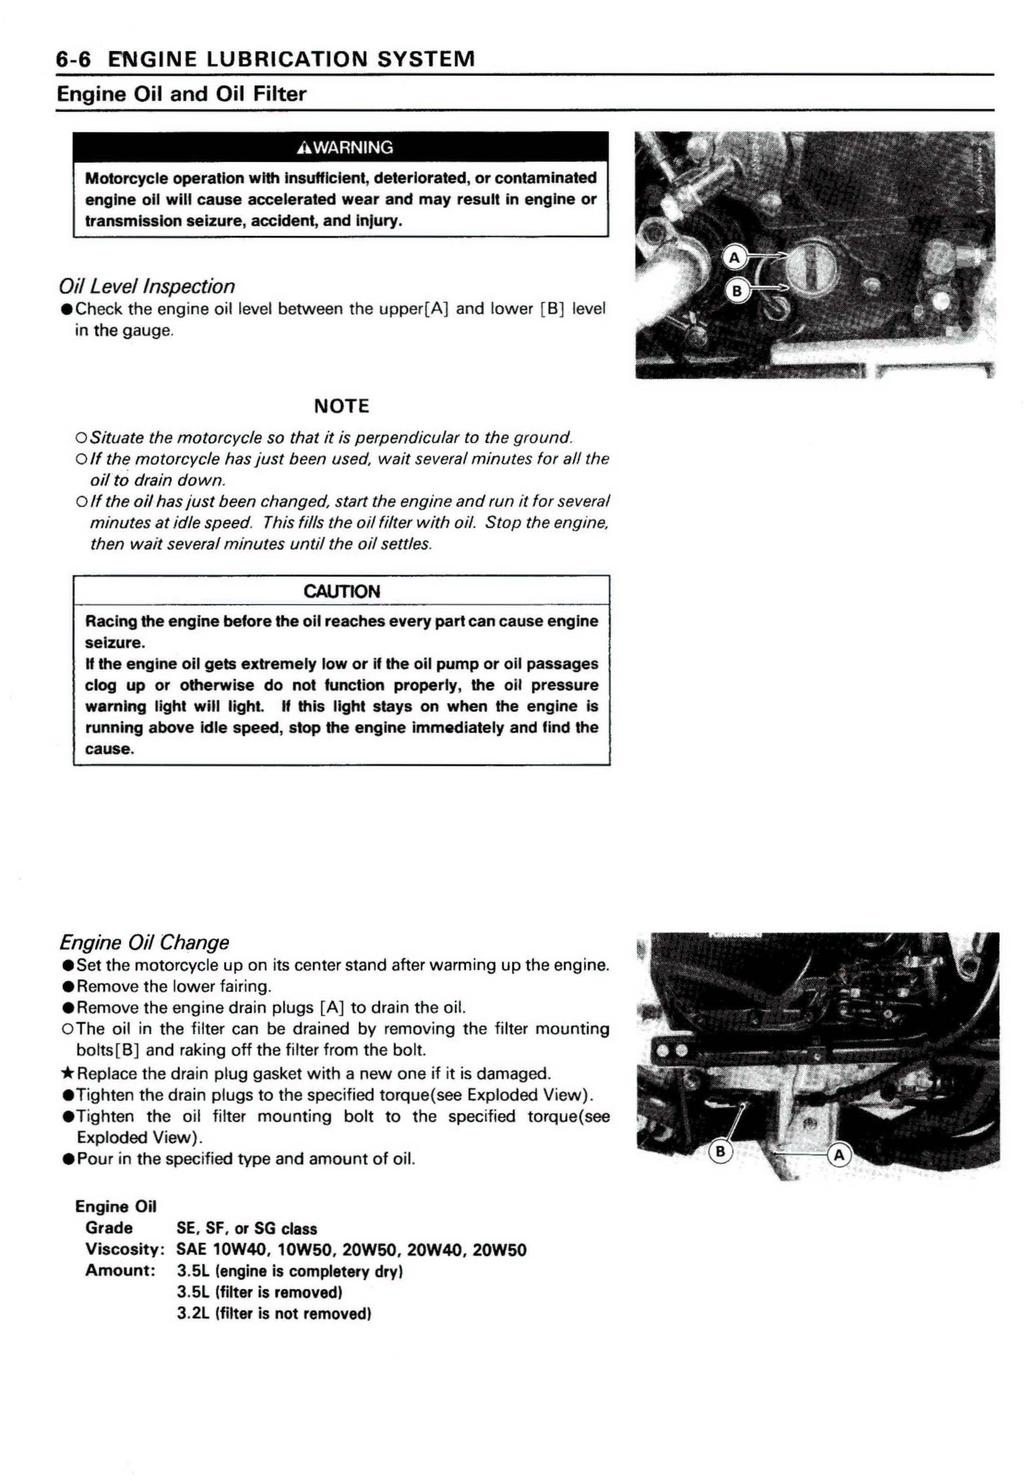 Ninja Zx 11 Zz R1100 Kawasaki Motorcycle Service Manual Pdf Pathfinder 3 5l Engine Diagram 6 Lubrication System Oil And Filter Awarning Operation With Insufficient